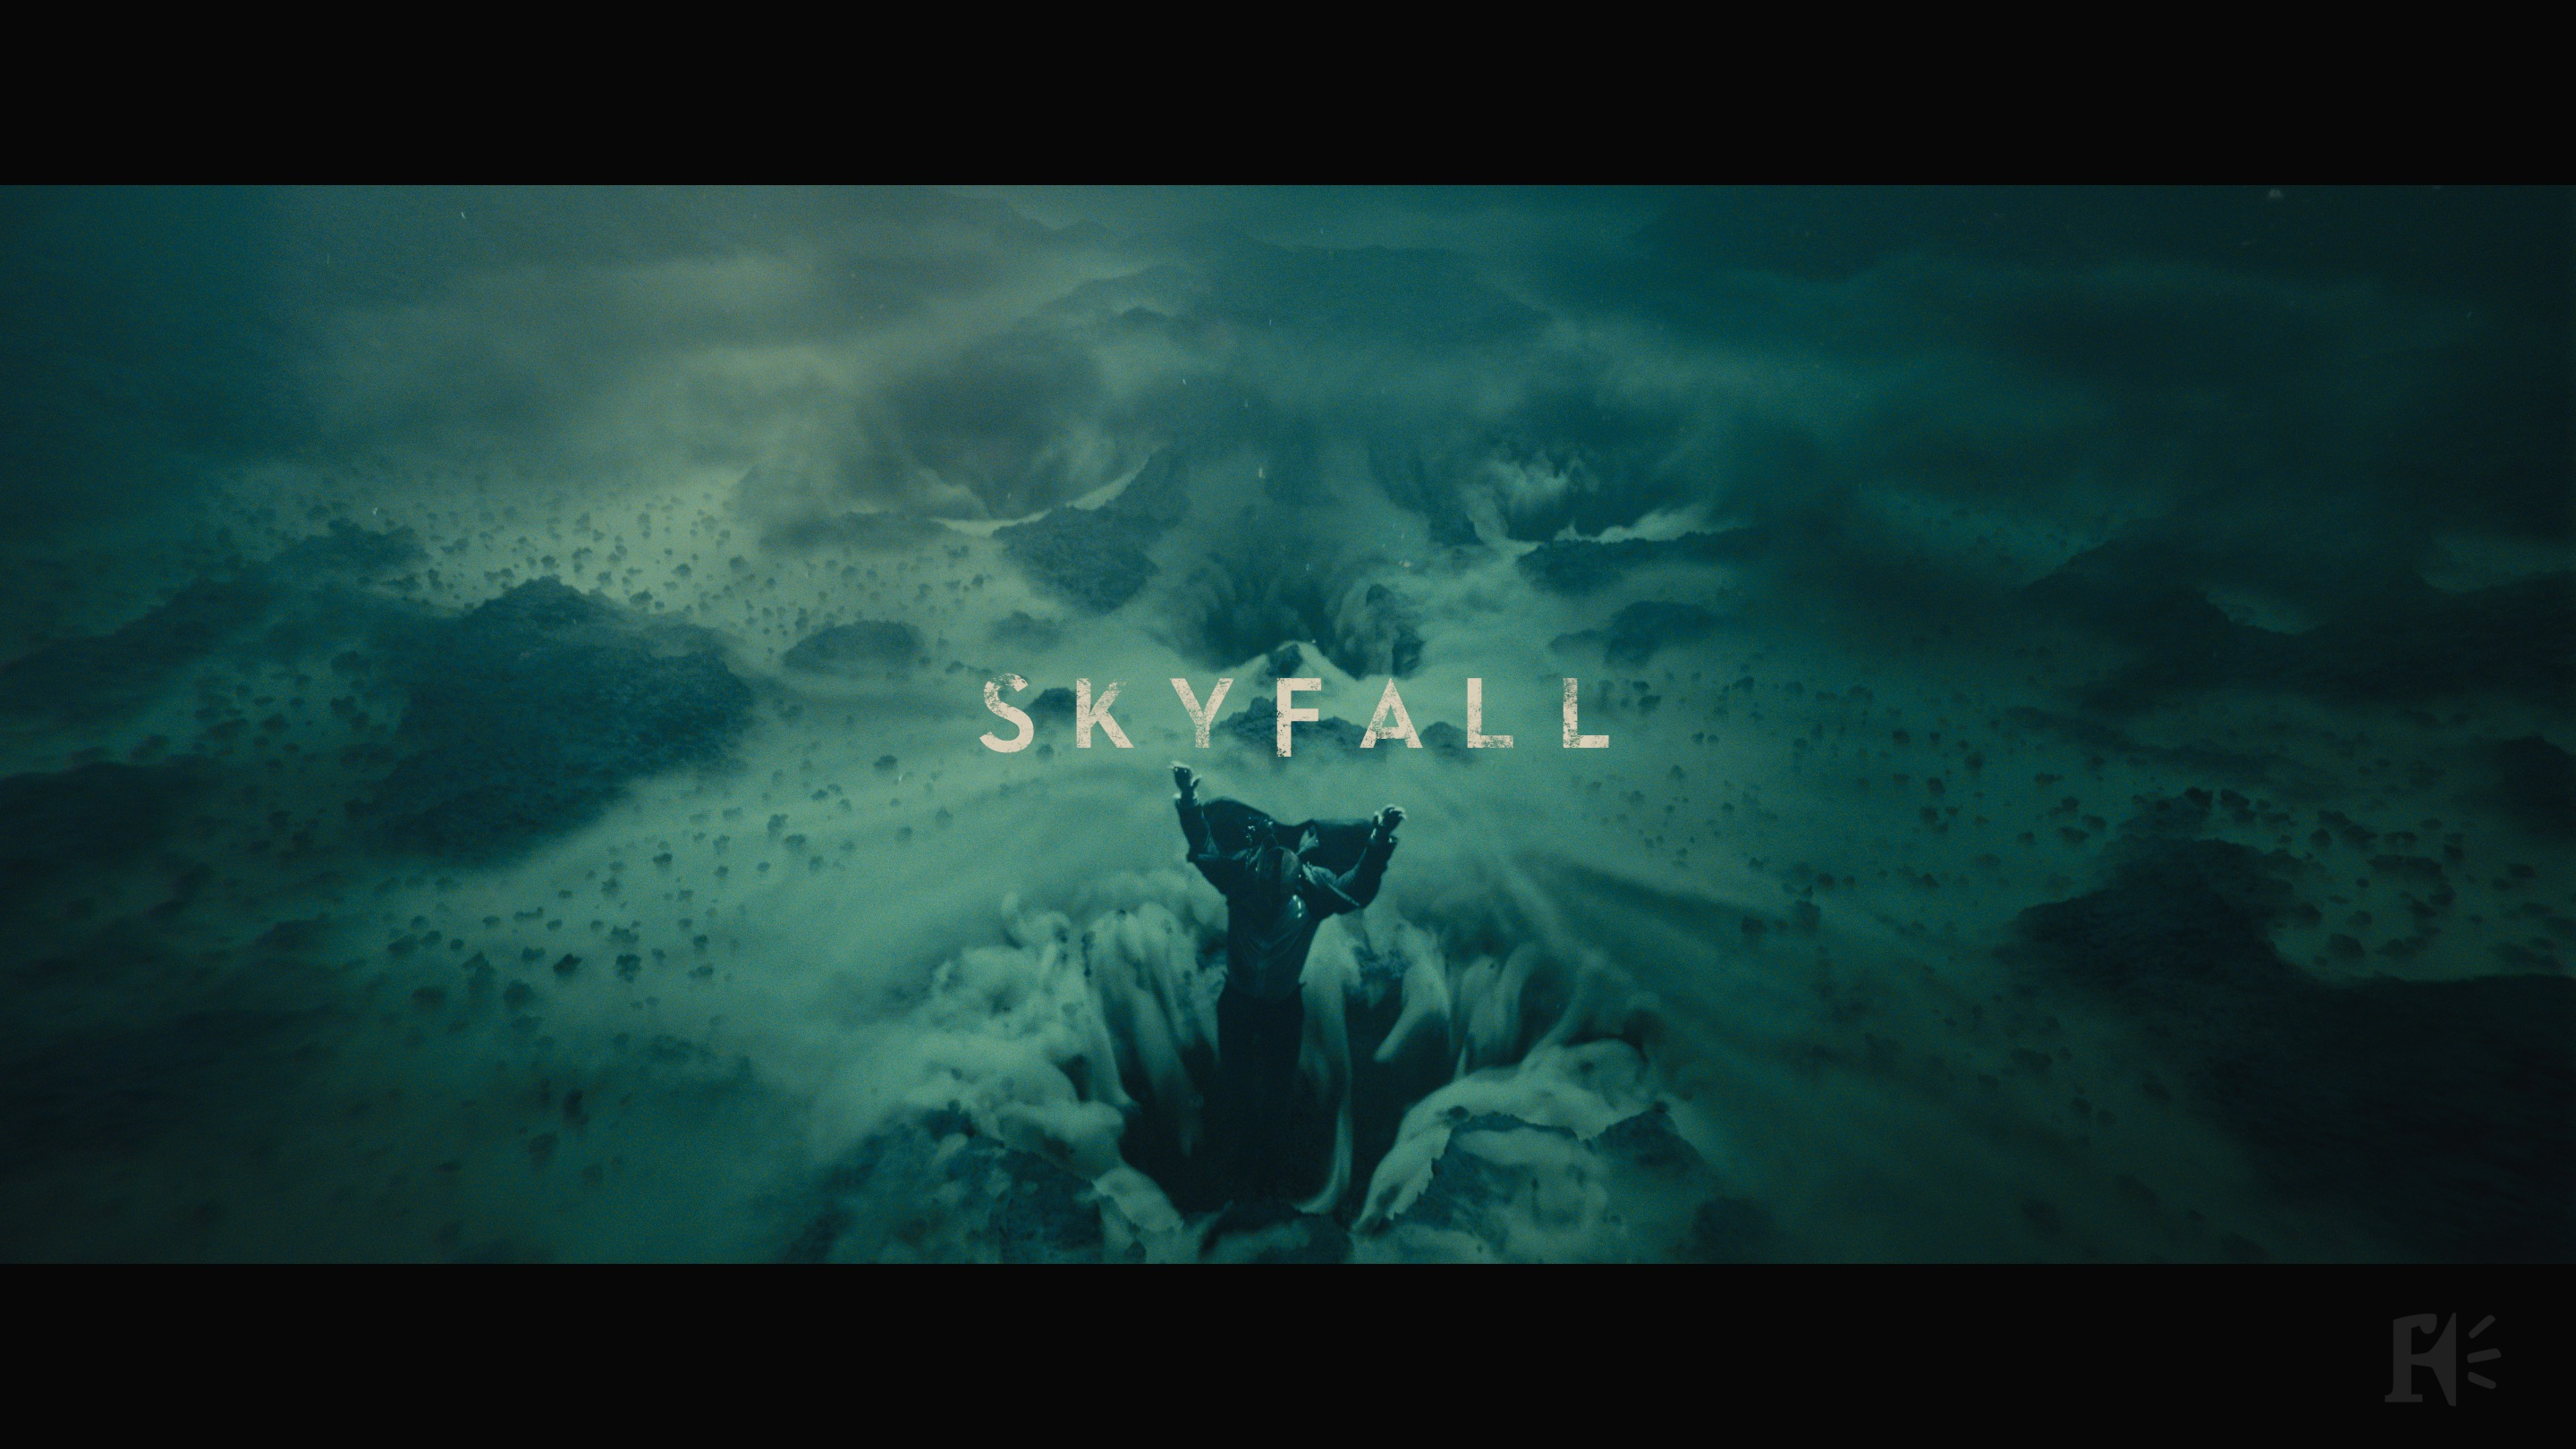 Skyfall (2012) — Art of the Title